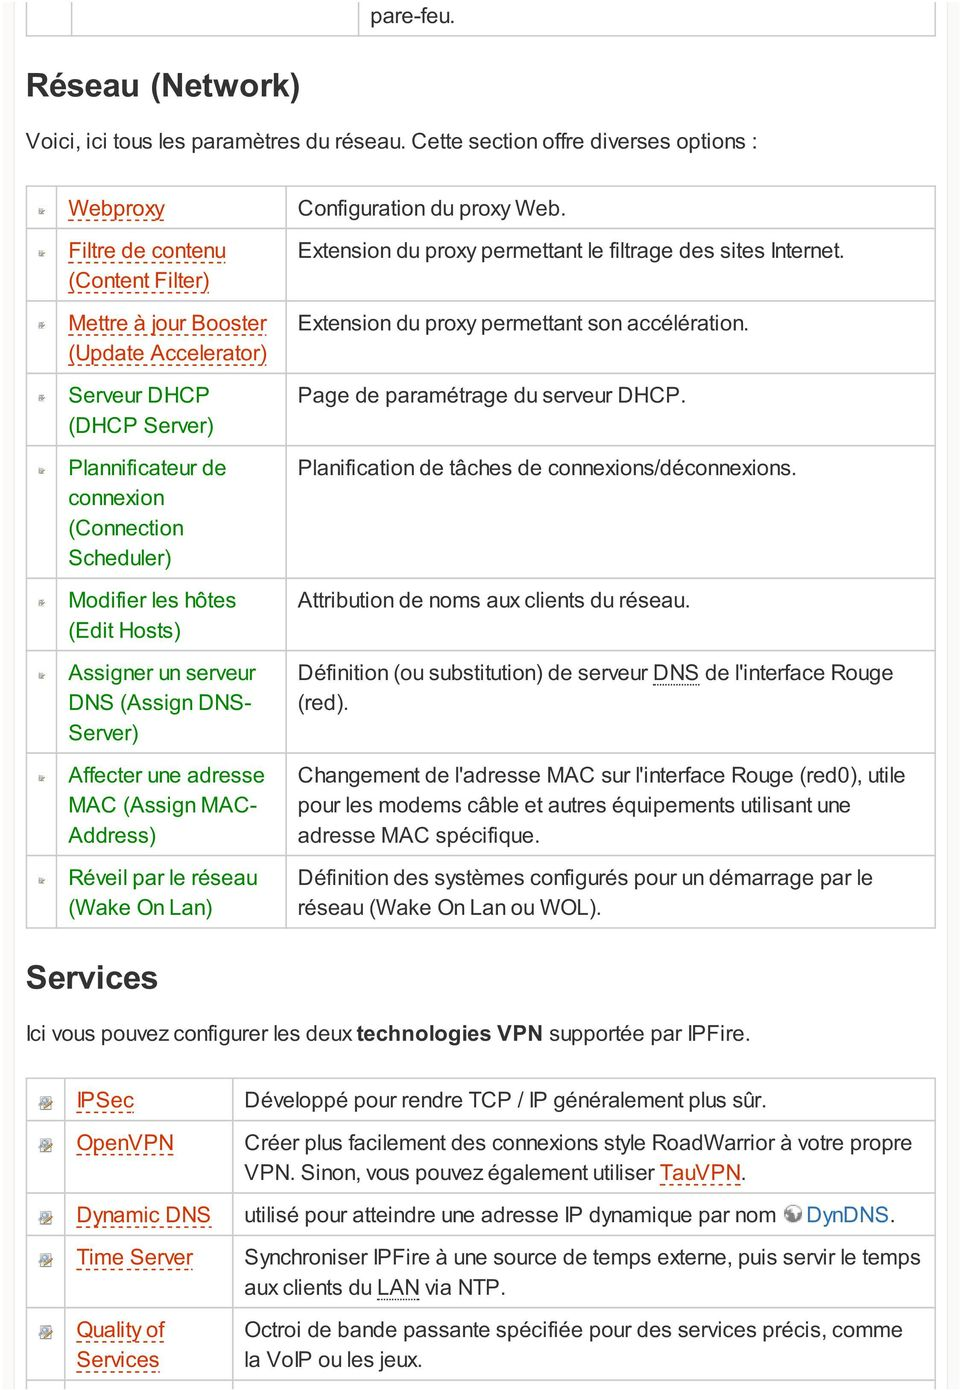 Scheduler) Modifier les hôtes (Edit Hosts) Assigner un serveur DNS (Assign DNS- Server) Affecter une adresse MAC (Assign MAC- Address) Réveil par le réseau (Wake On Lan) Configuration du proxy Web.